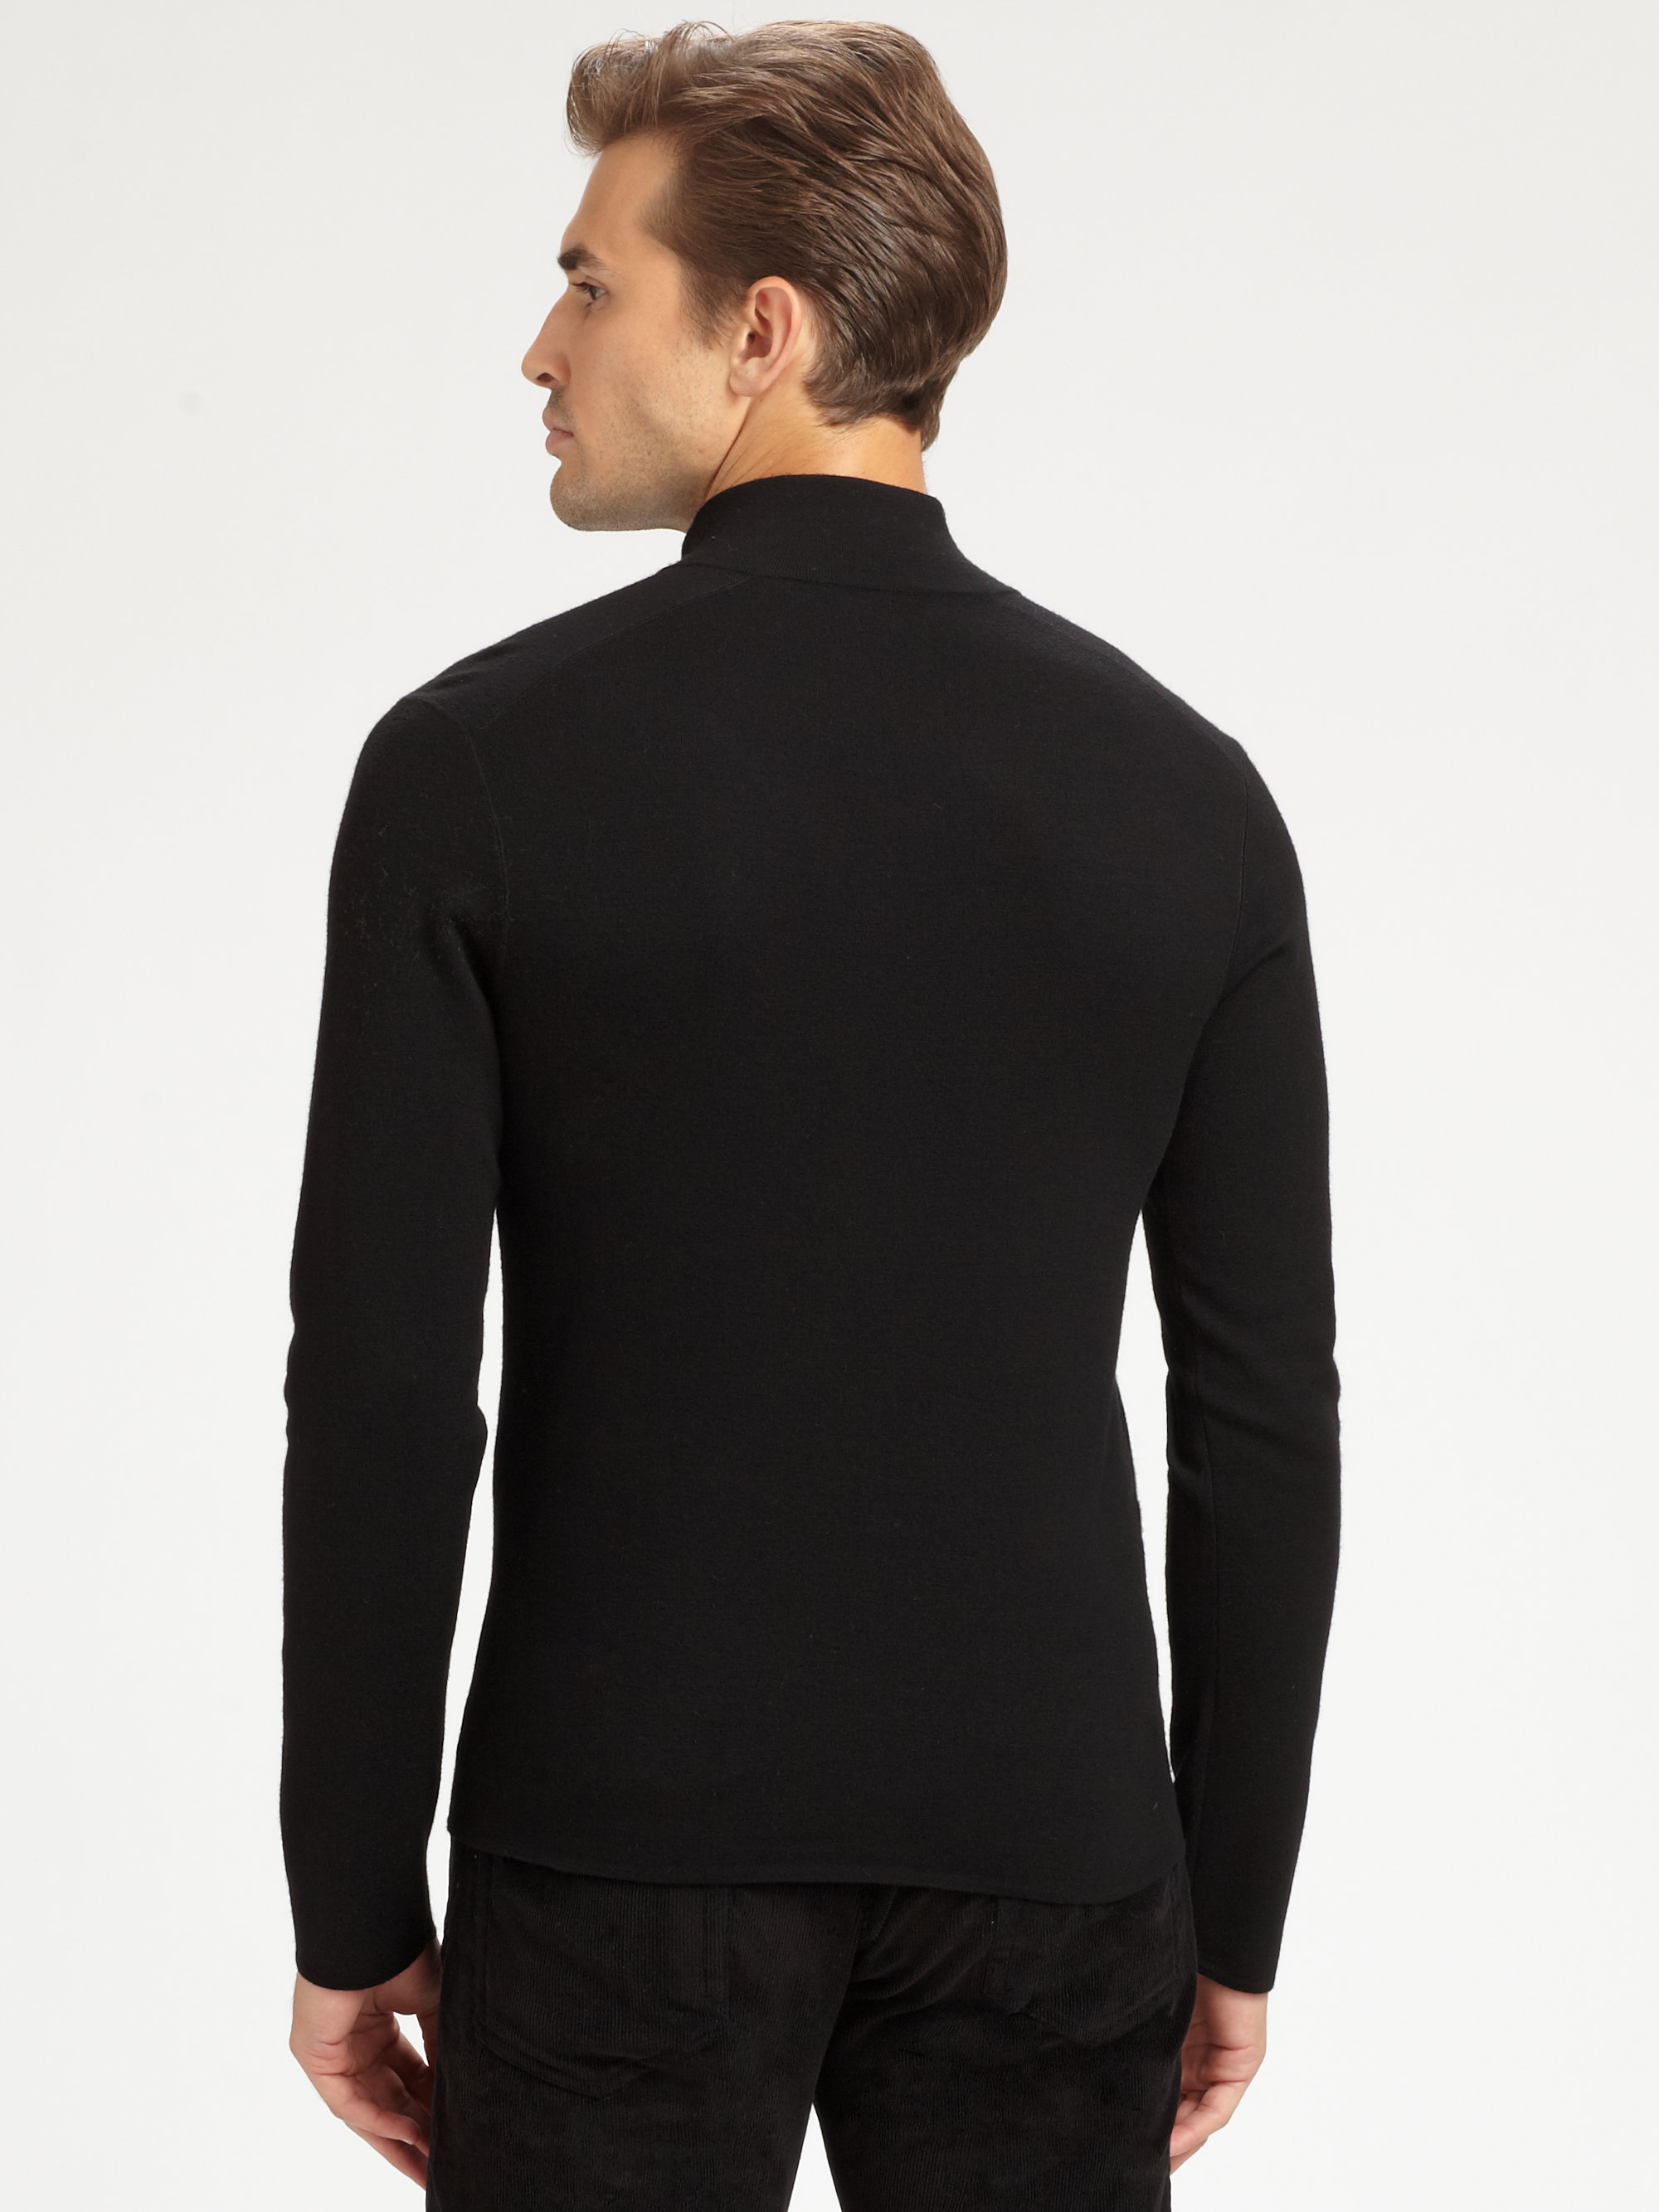 Ralph lauren black label Fullzip Merino Wool Sweater in Black for ...